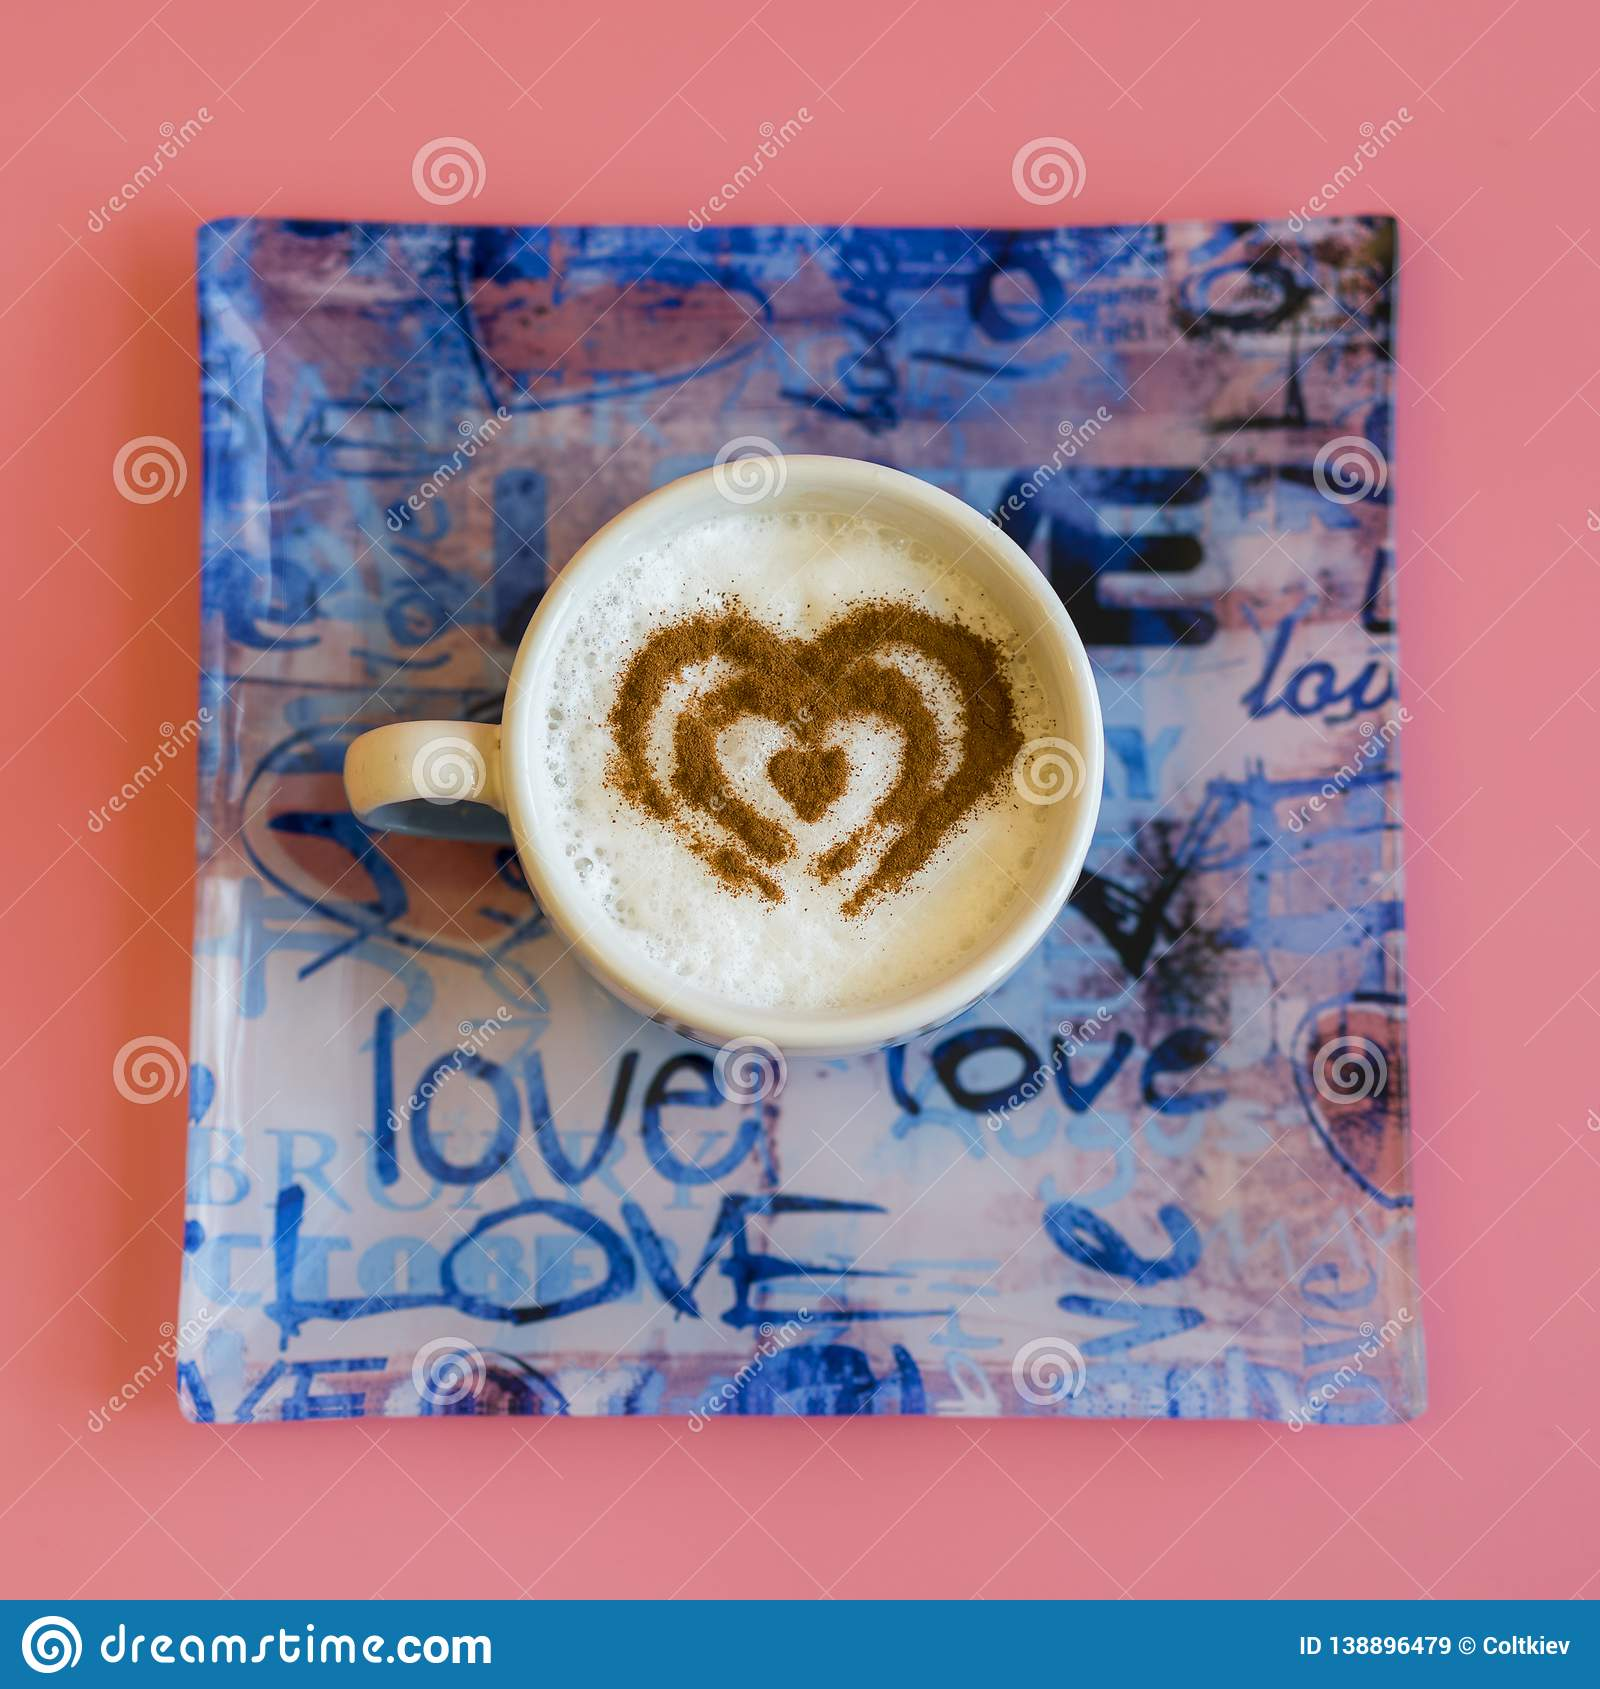 Heart Shape Coffee Cup Concept isolated on pink background. love cup , heart drawing on latte art coffee. square